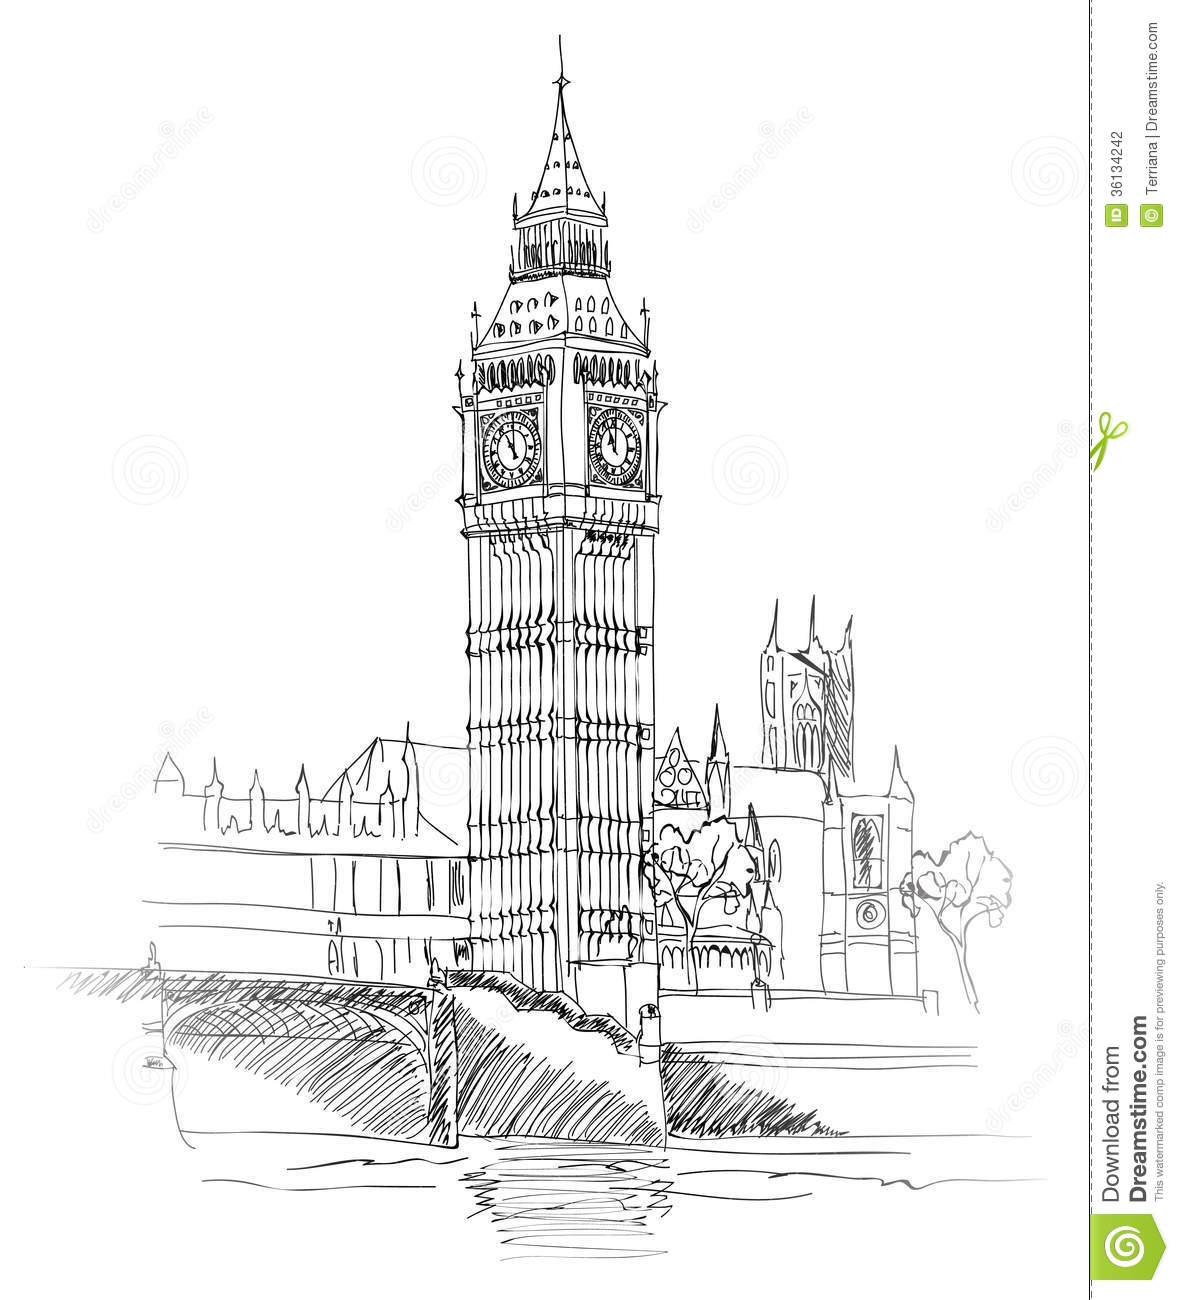 Historical Williamsburg additionally Photographie Stock Big Ben Londres Angleterre R U Fond D Old Fashioned De L Europe De Voyage Image36134242 likewise Neuschwanstein Castle moreover Stock Illustration High Resolution Hand Drawing Dolmabahce Palace Istanbul Image66104801 moreover Stock Illustration French Louvre Museum Black White Color Silhouette Paris Landmark Qualitative Vector Illustration Travel France Image53657604. on palace plans